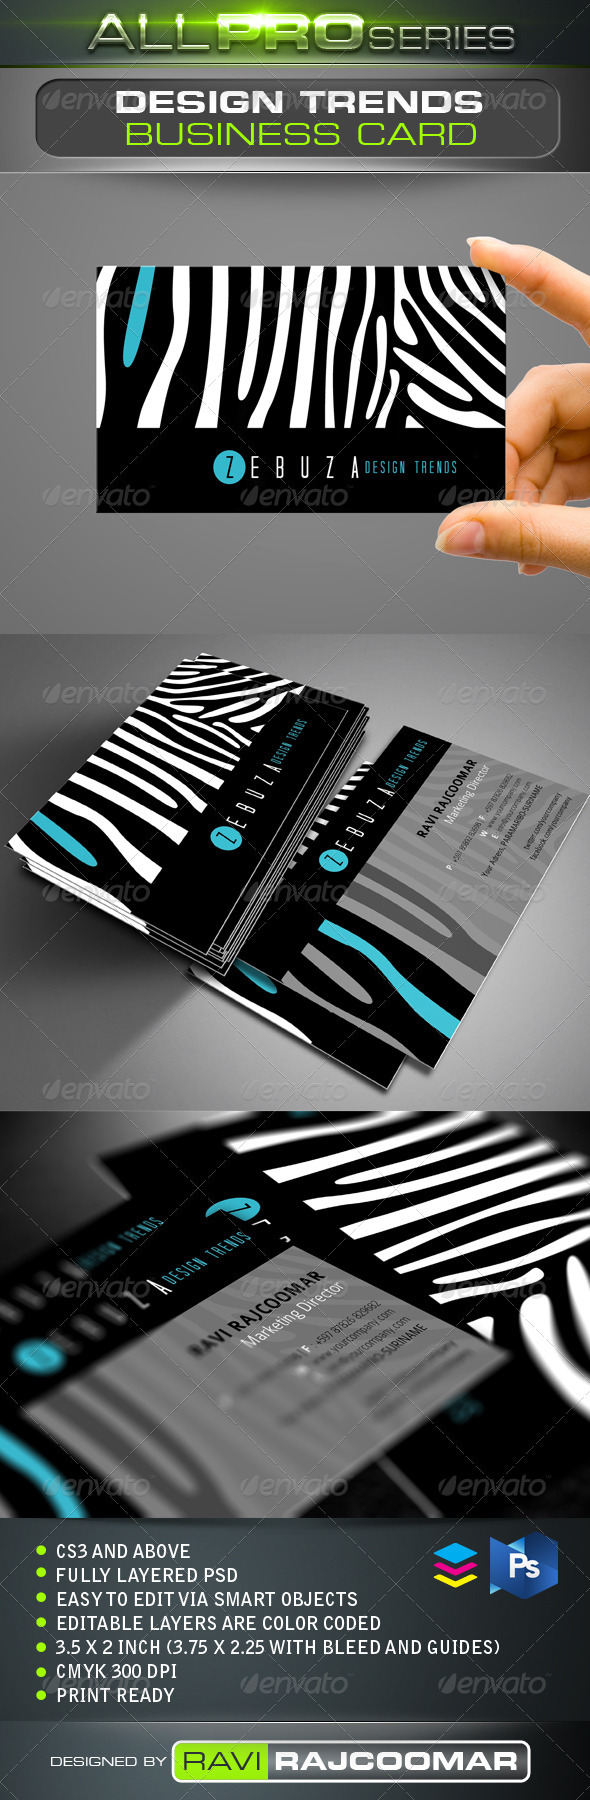 GraphicRiver Design Trends Business Card 3476655